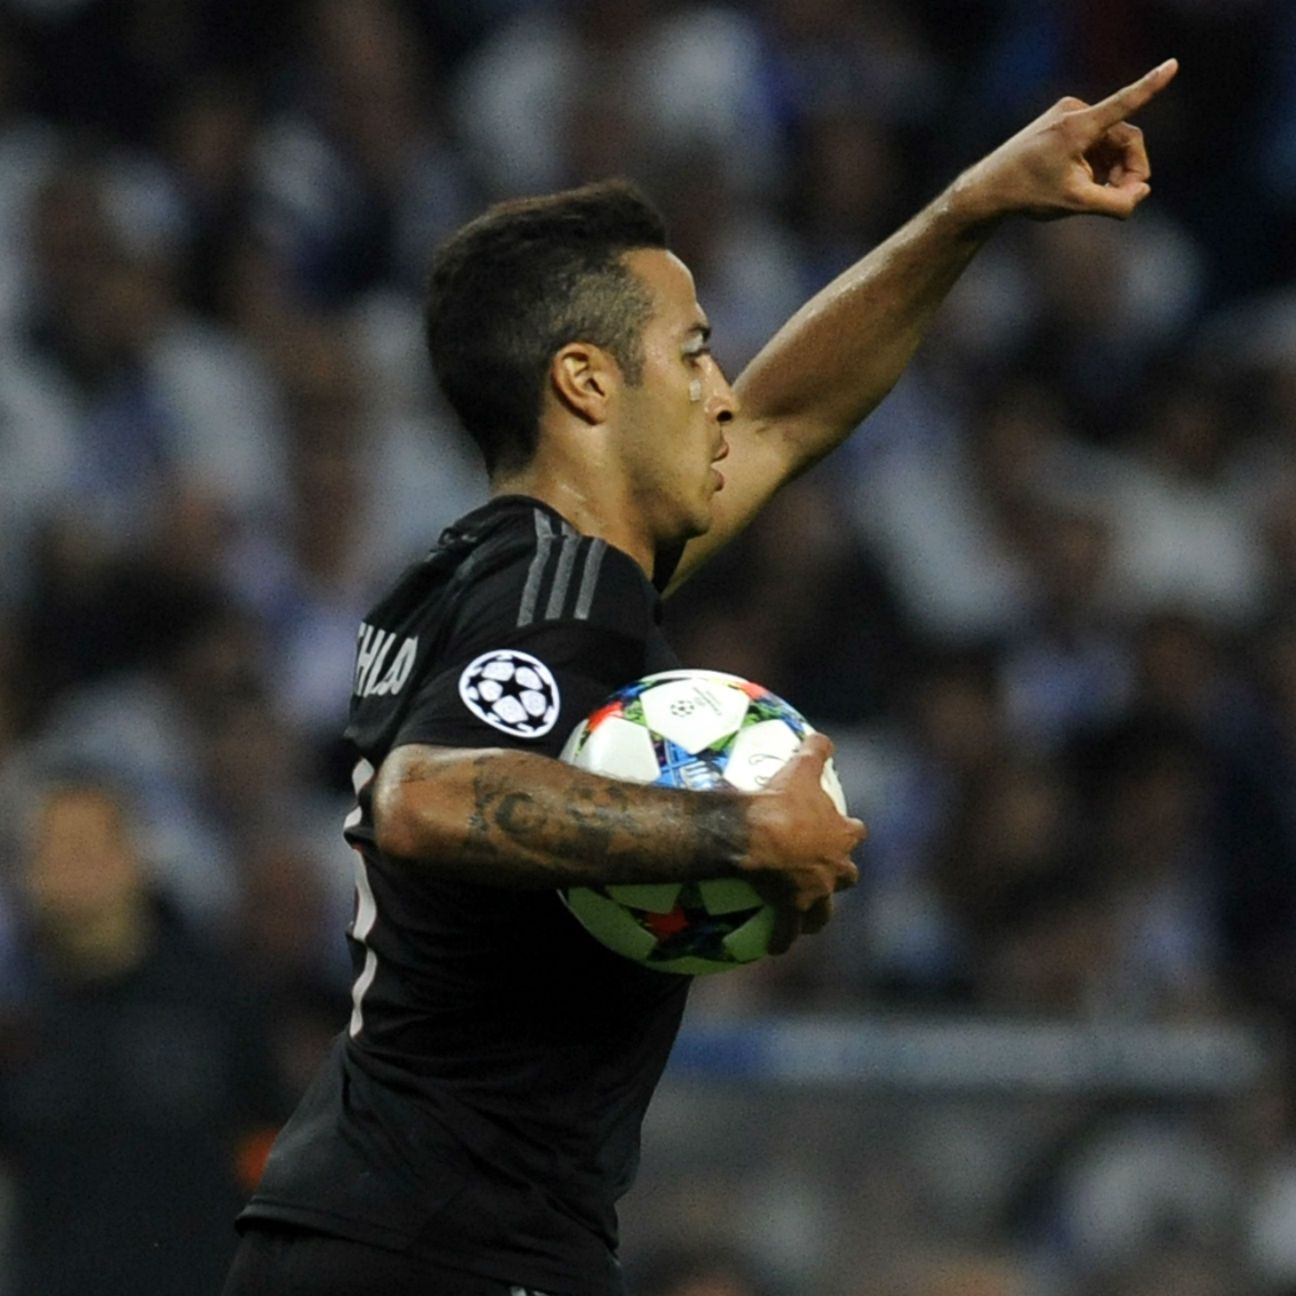 Thanks to Thiago's crucial away goal in the first leg, a 2-0 home win over Porto in Tuesday's return leg would see Bayern through to the Champions League semifinals.